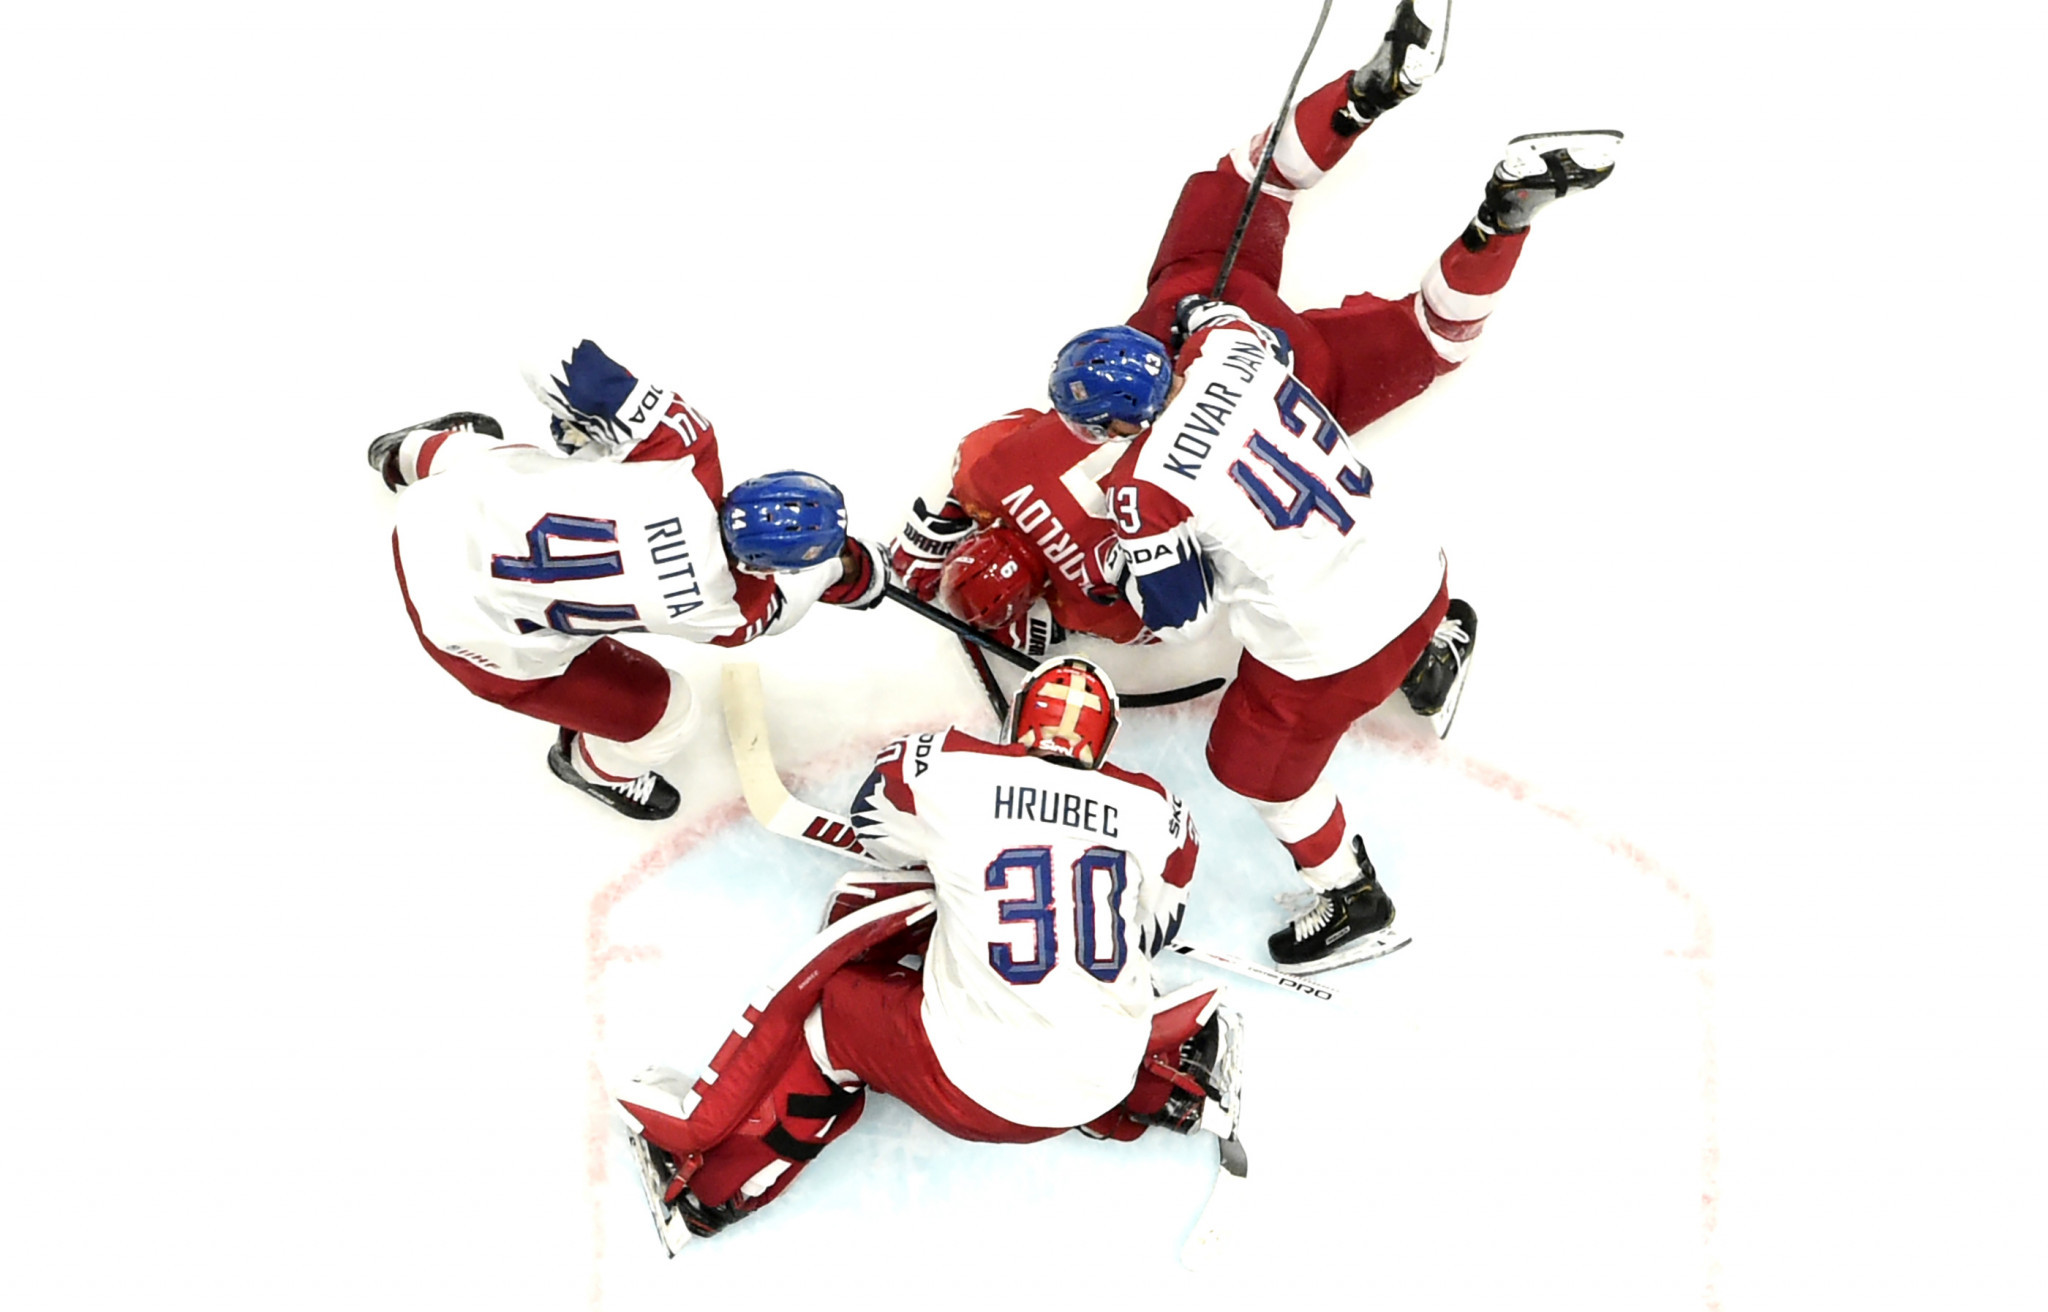 Czech Republic finished fourth at last month's IIHF World Championship after losing to Russia in the bronze medal match ©Getty Images